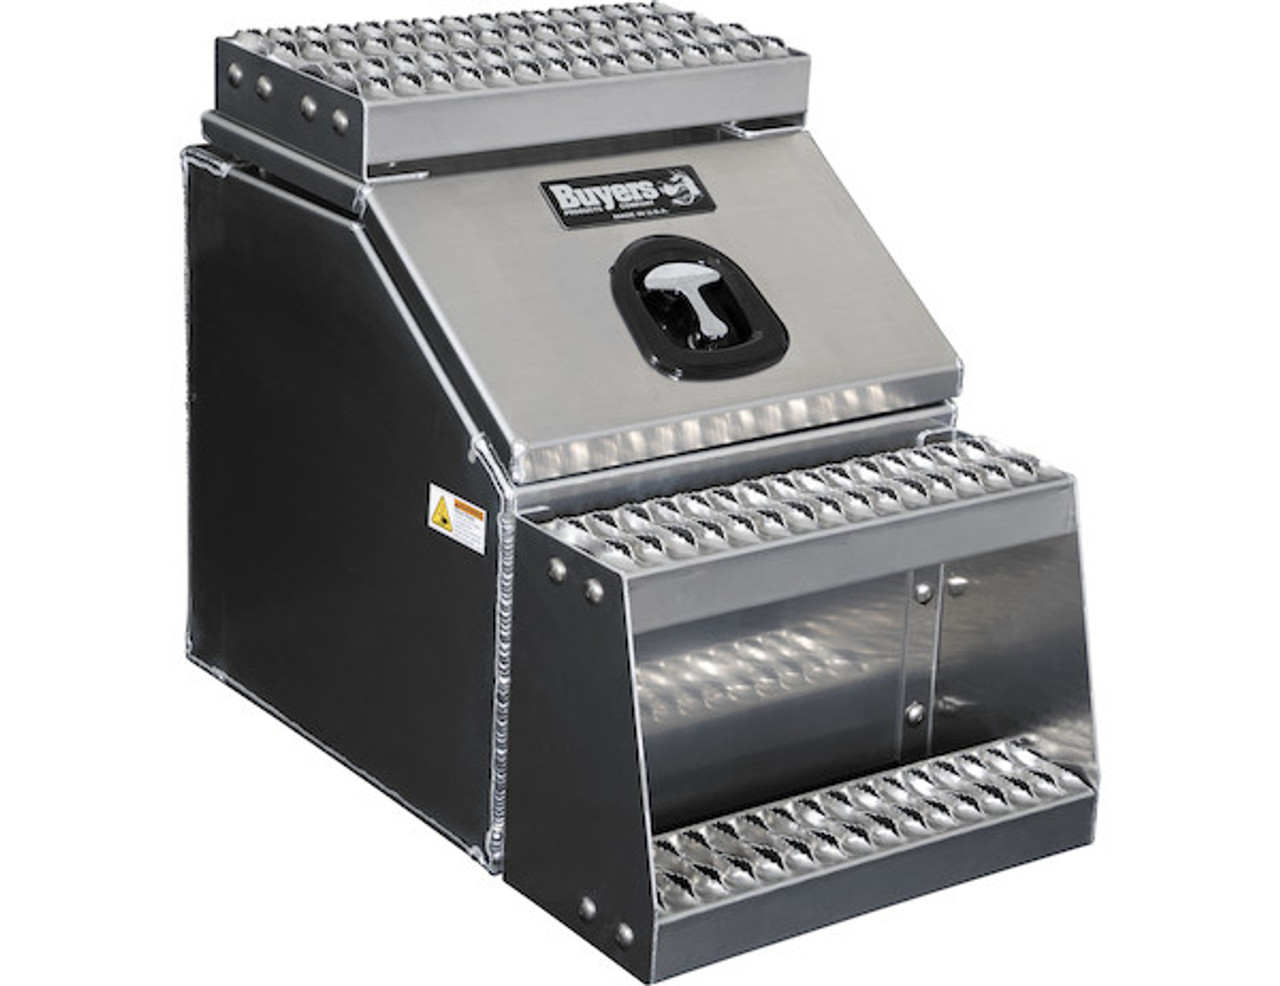 1705281 BUYERS PRODUCTS WideOpen™ Class 8 Step Tool Box For Semi Trucks - 18 Inch Width 1